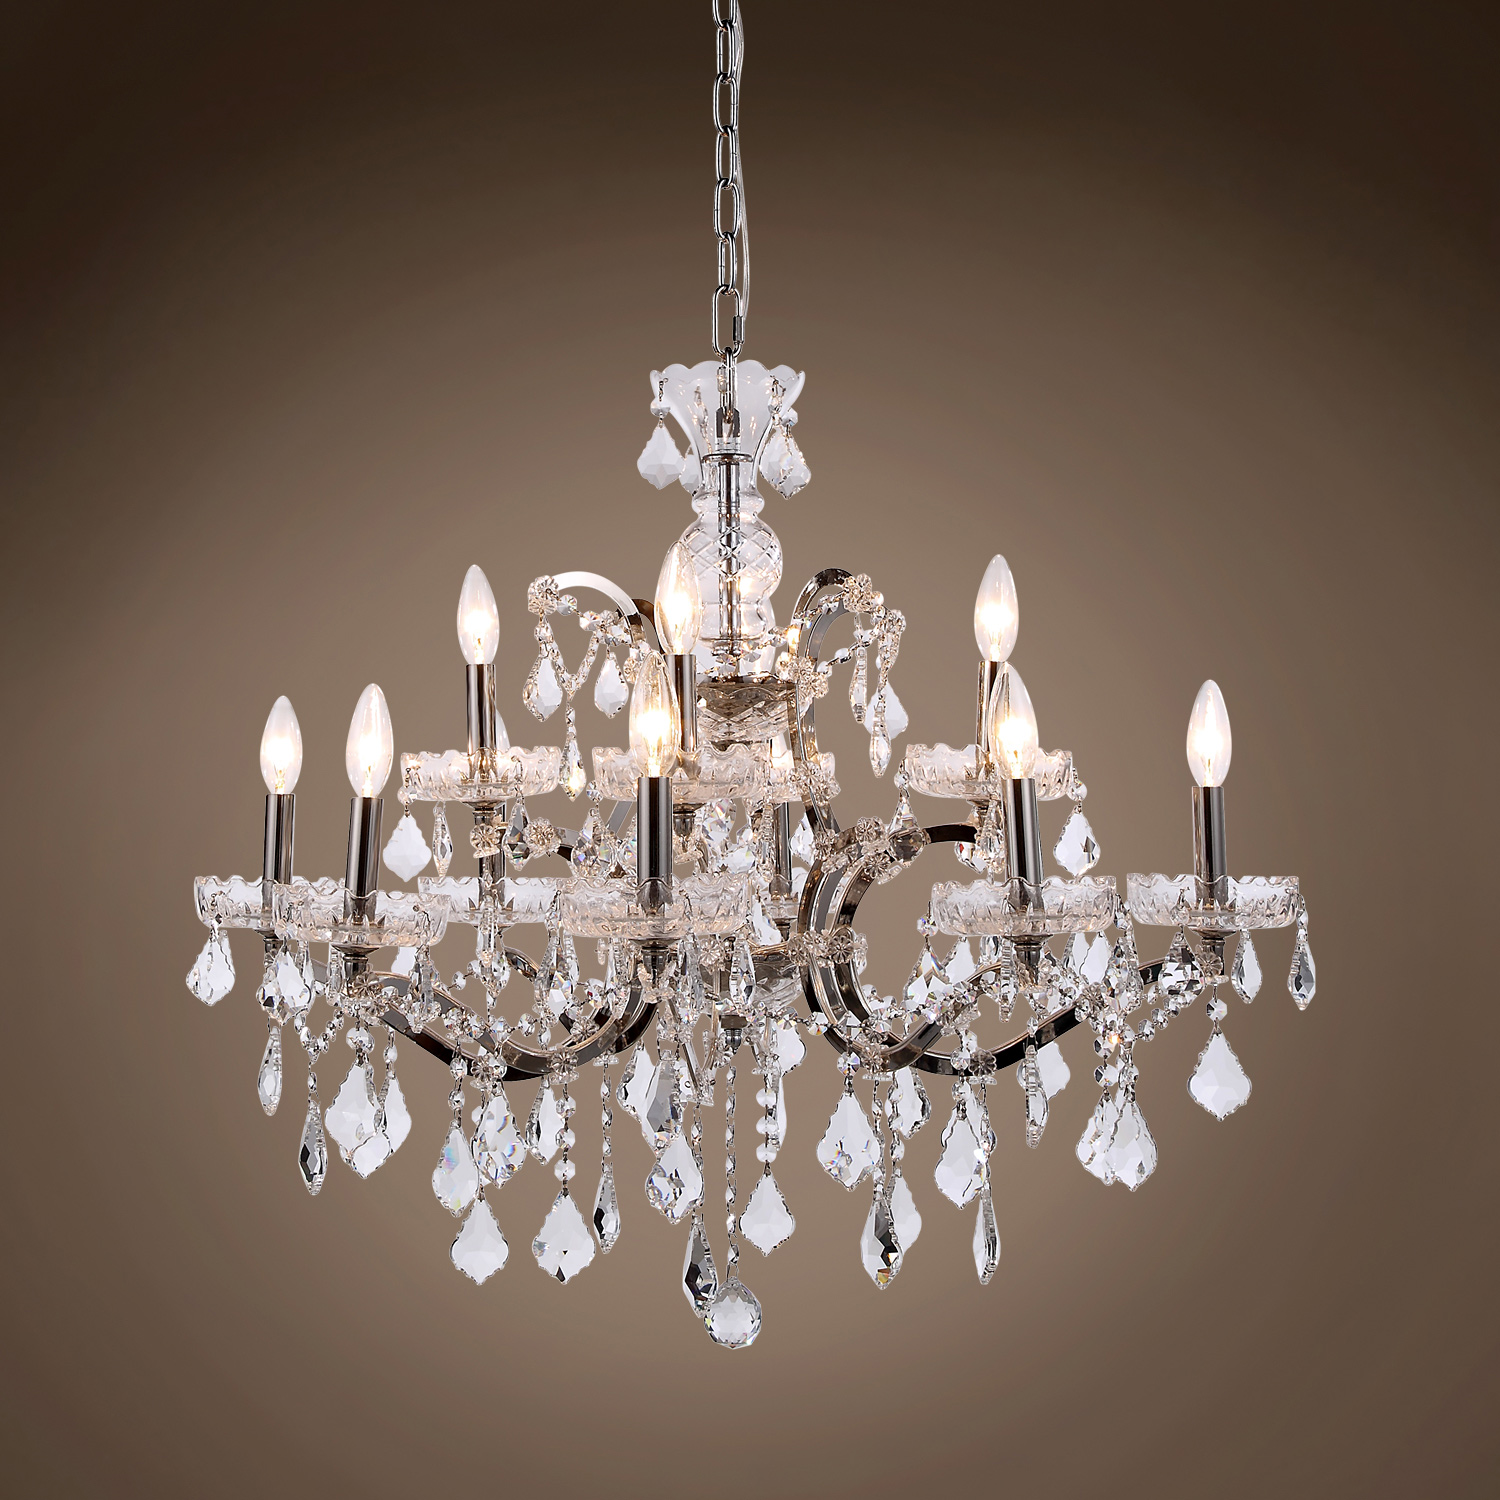 the small chandelier iron h rococo w unusual room x modern and gallery chandeliers dining crystal victorian empire french affordable lighting styles